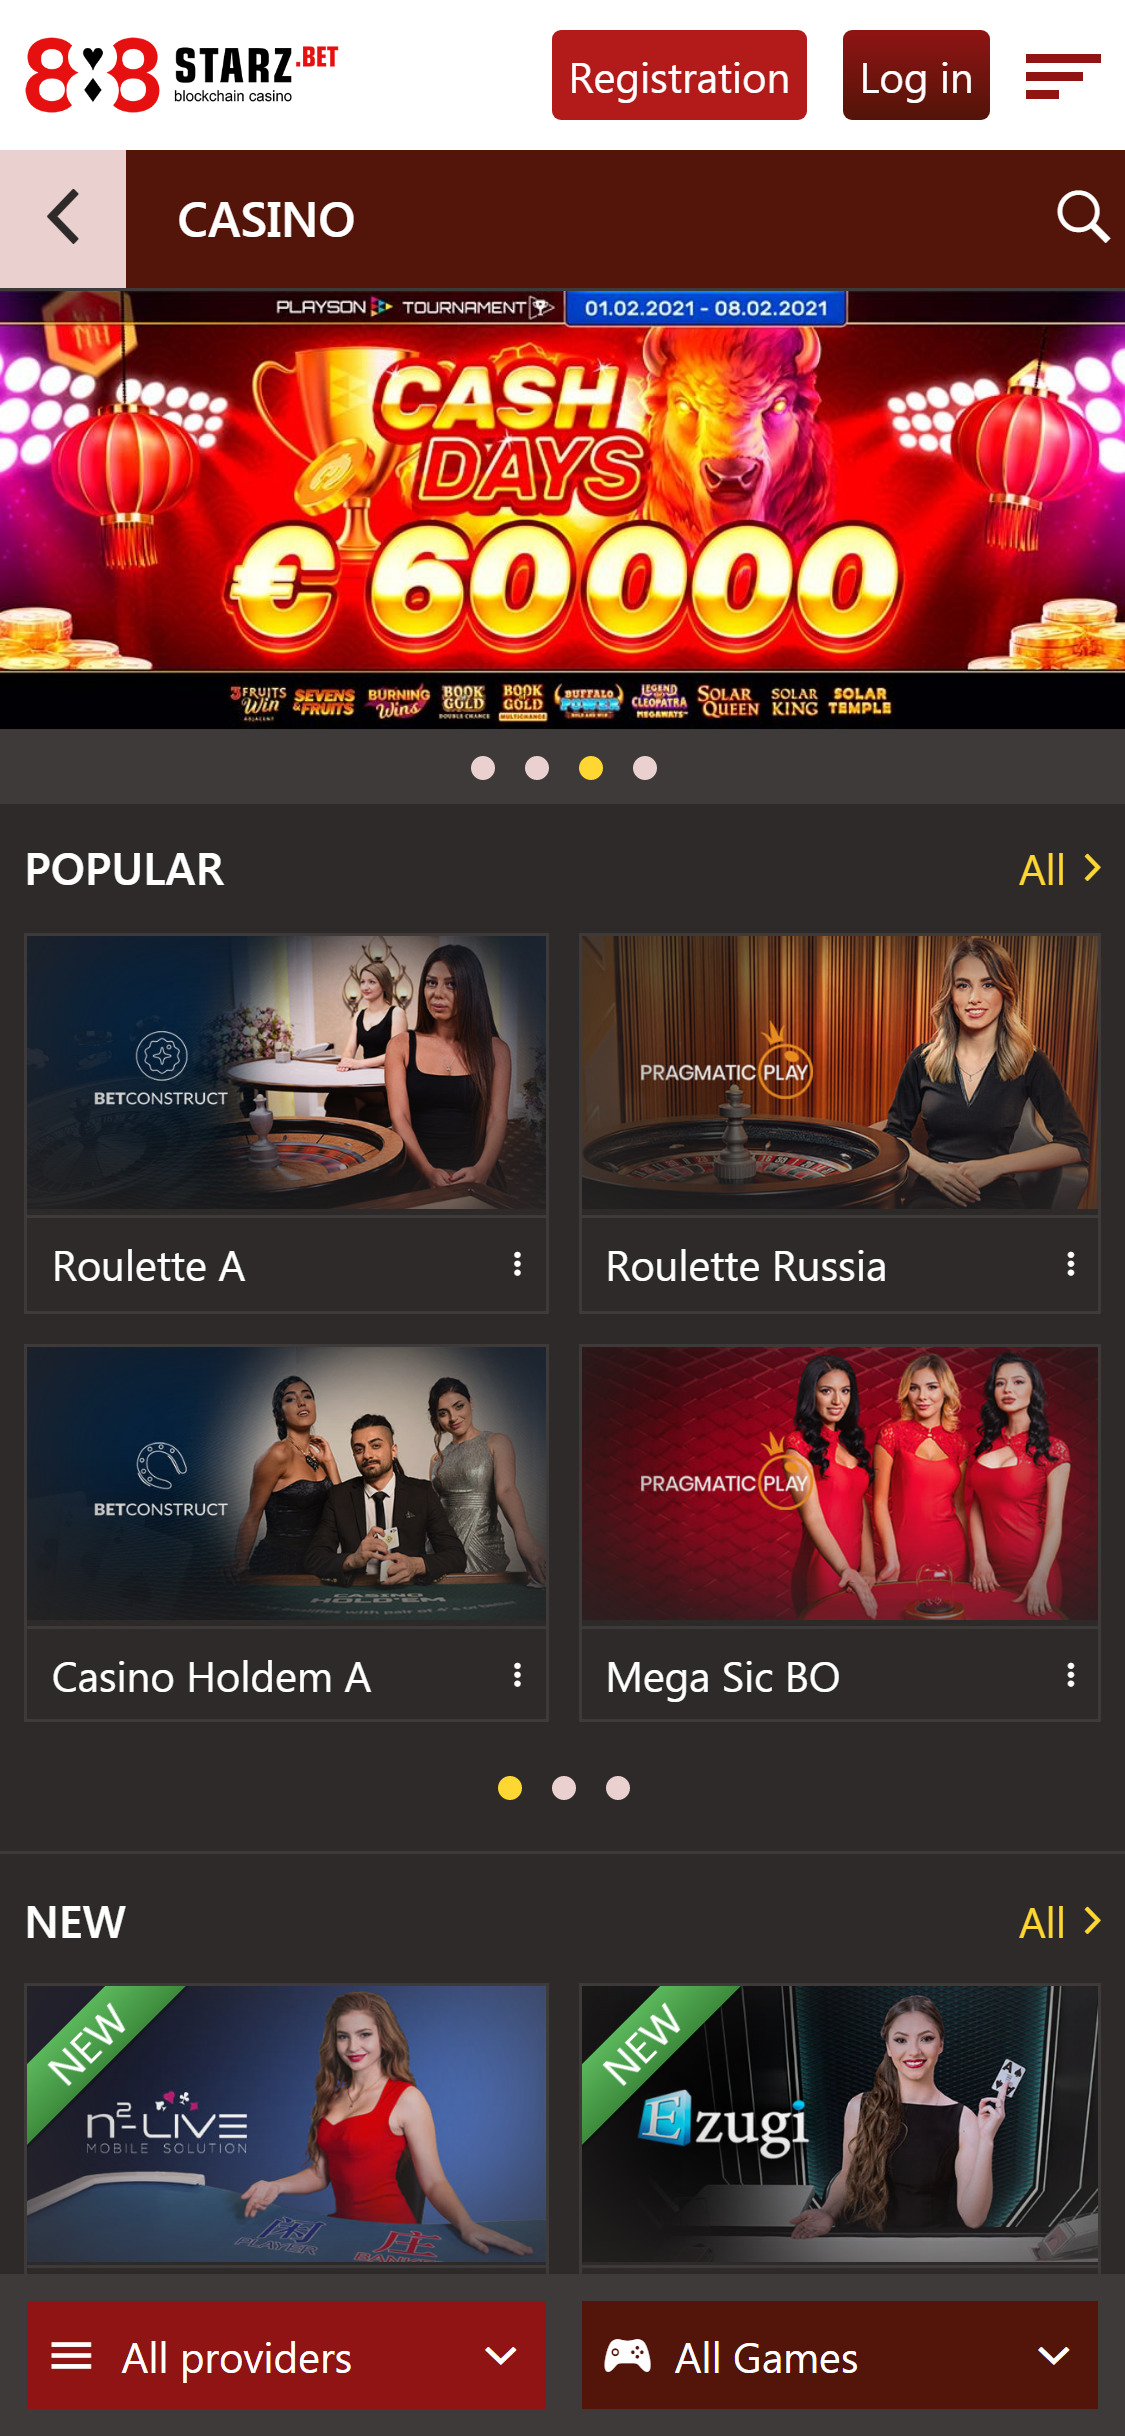 888Starz Casino Live Dealer Games